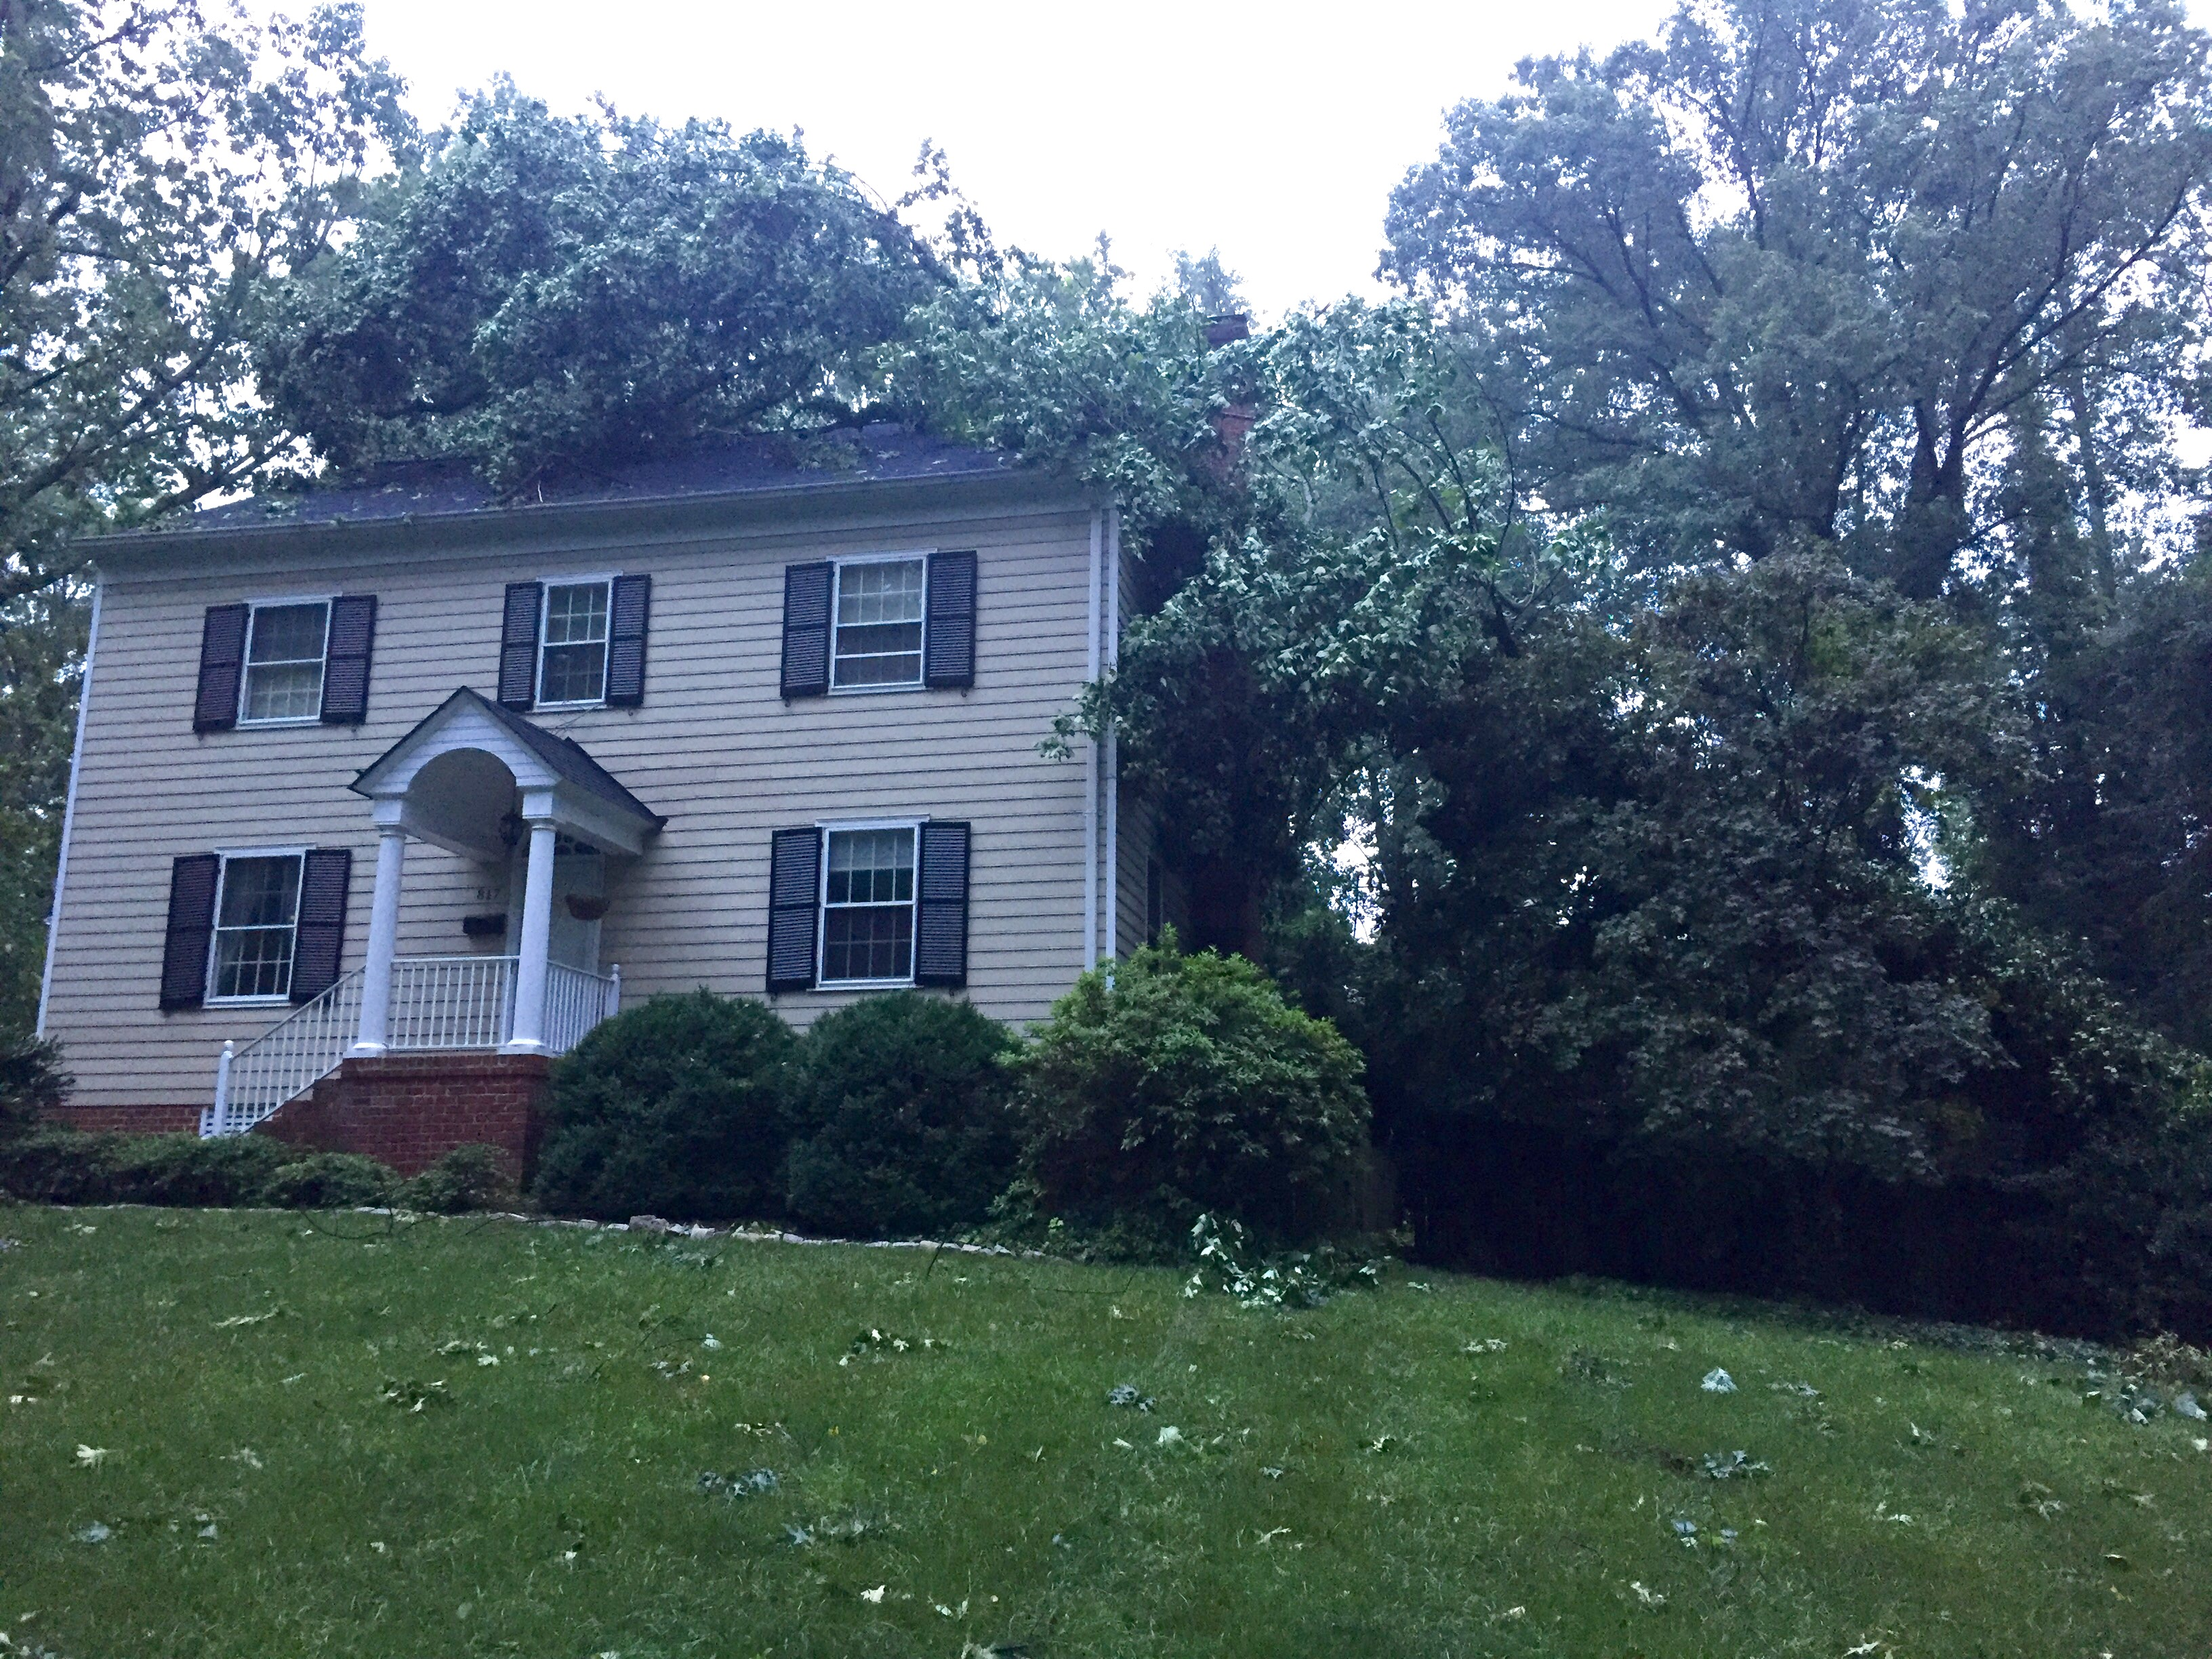 That Time A Tree Fell On the House